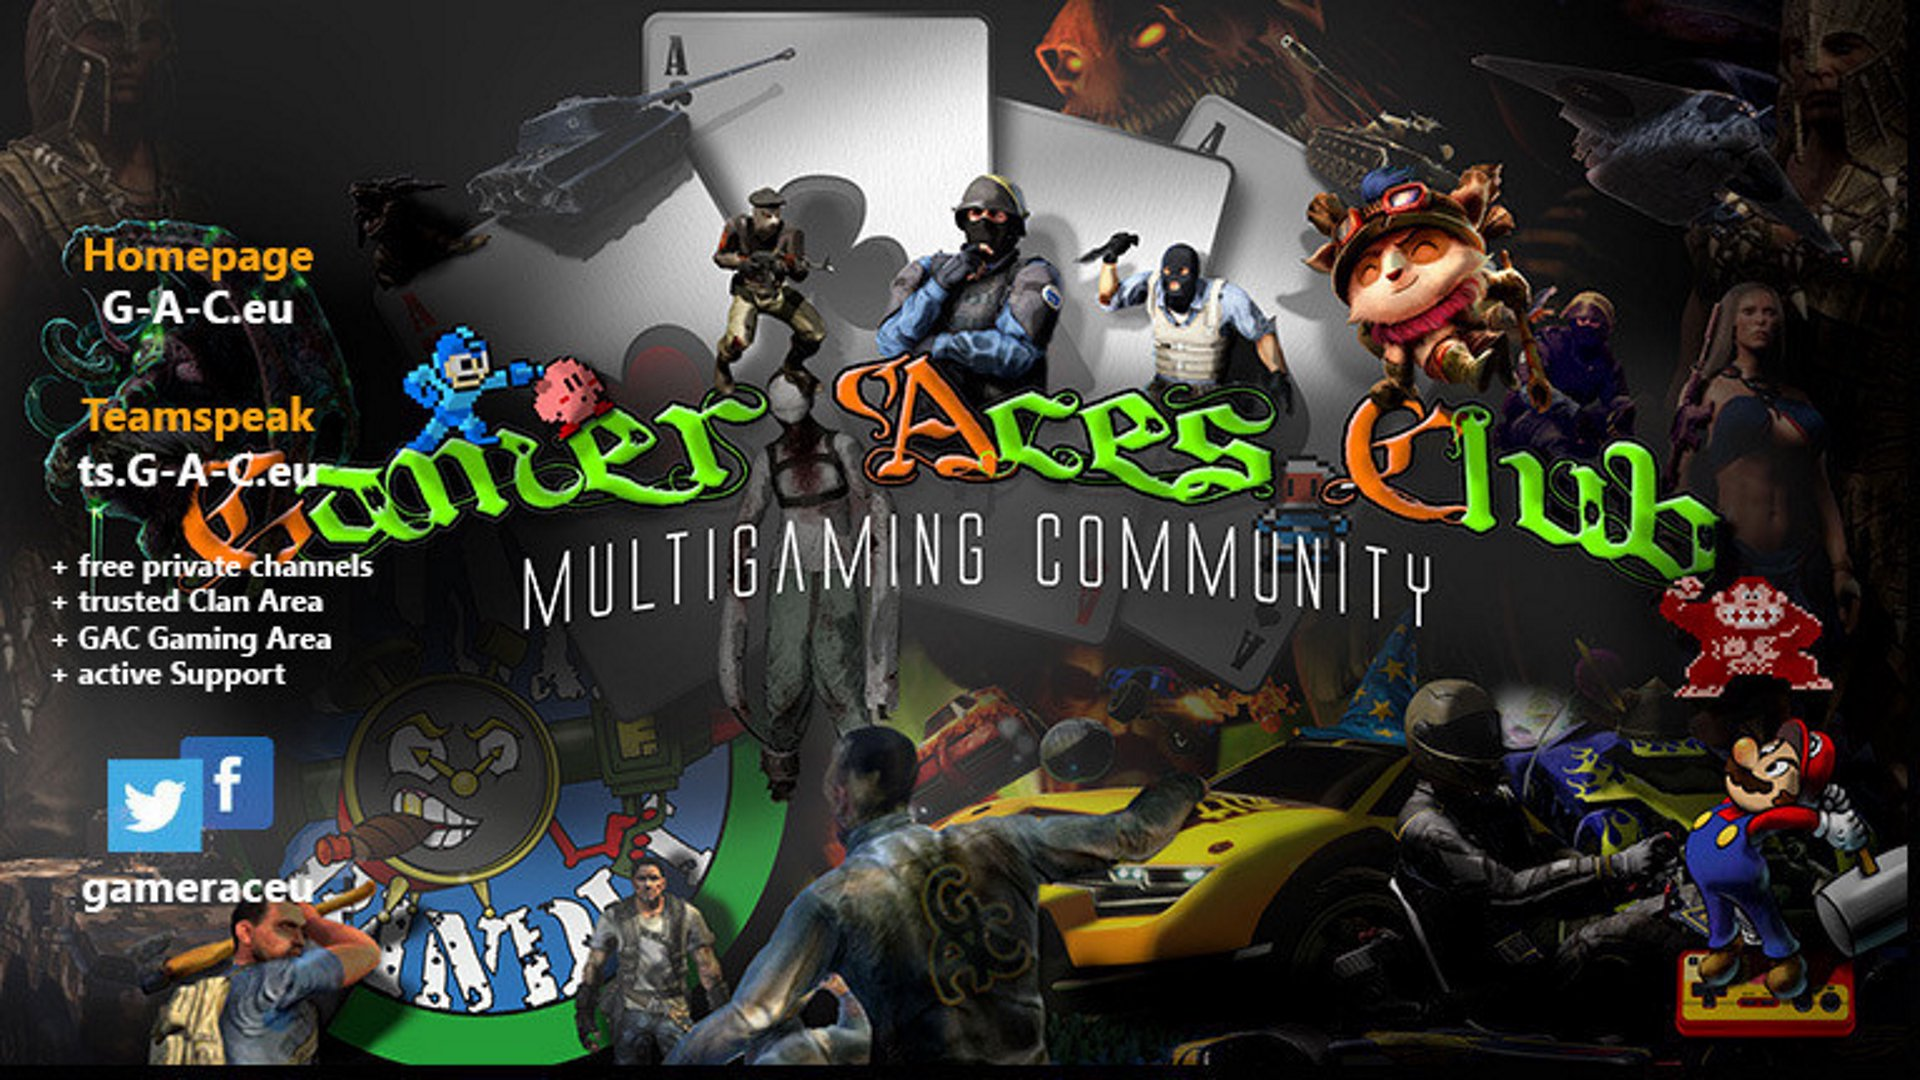 Twitch stream of GamerAcesClub